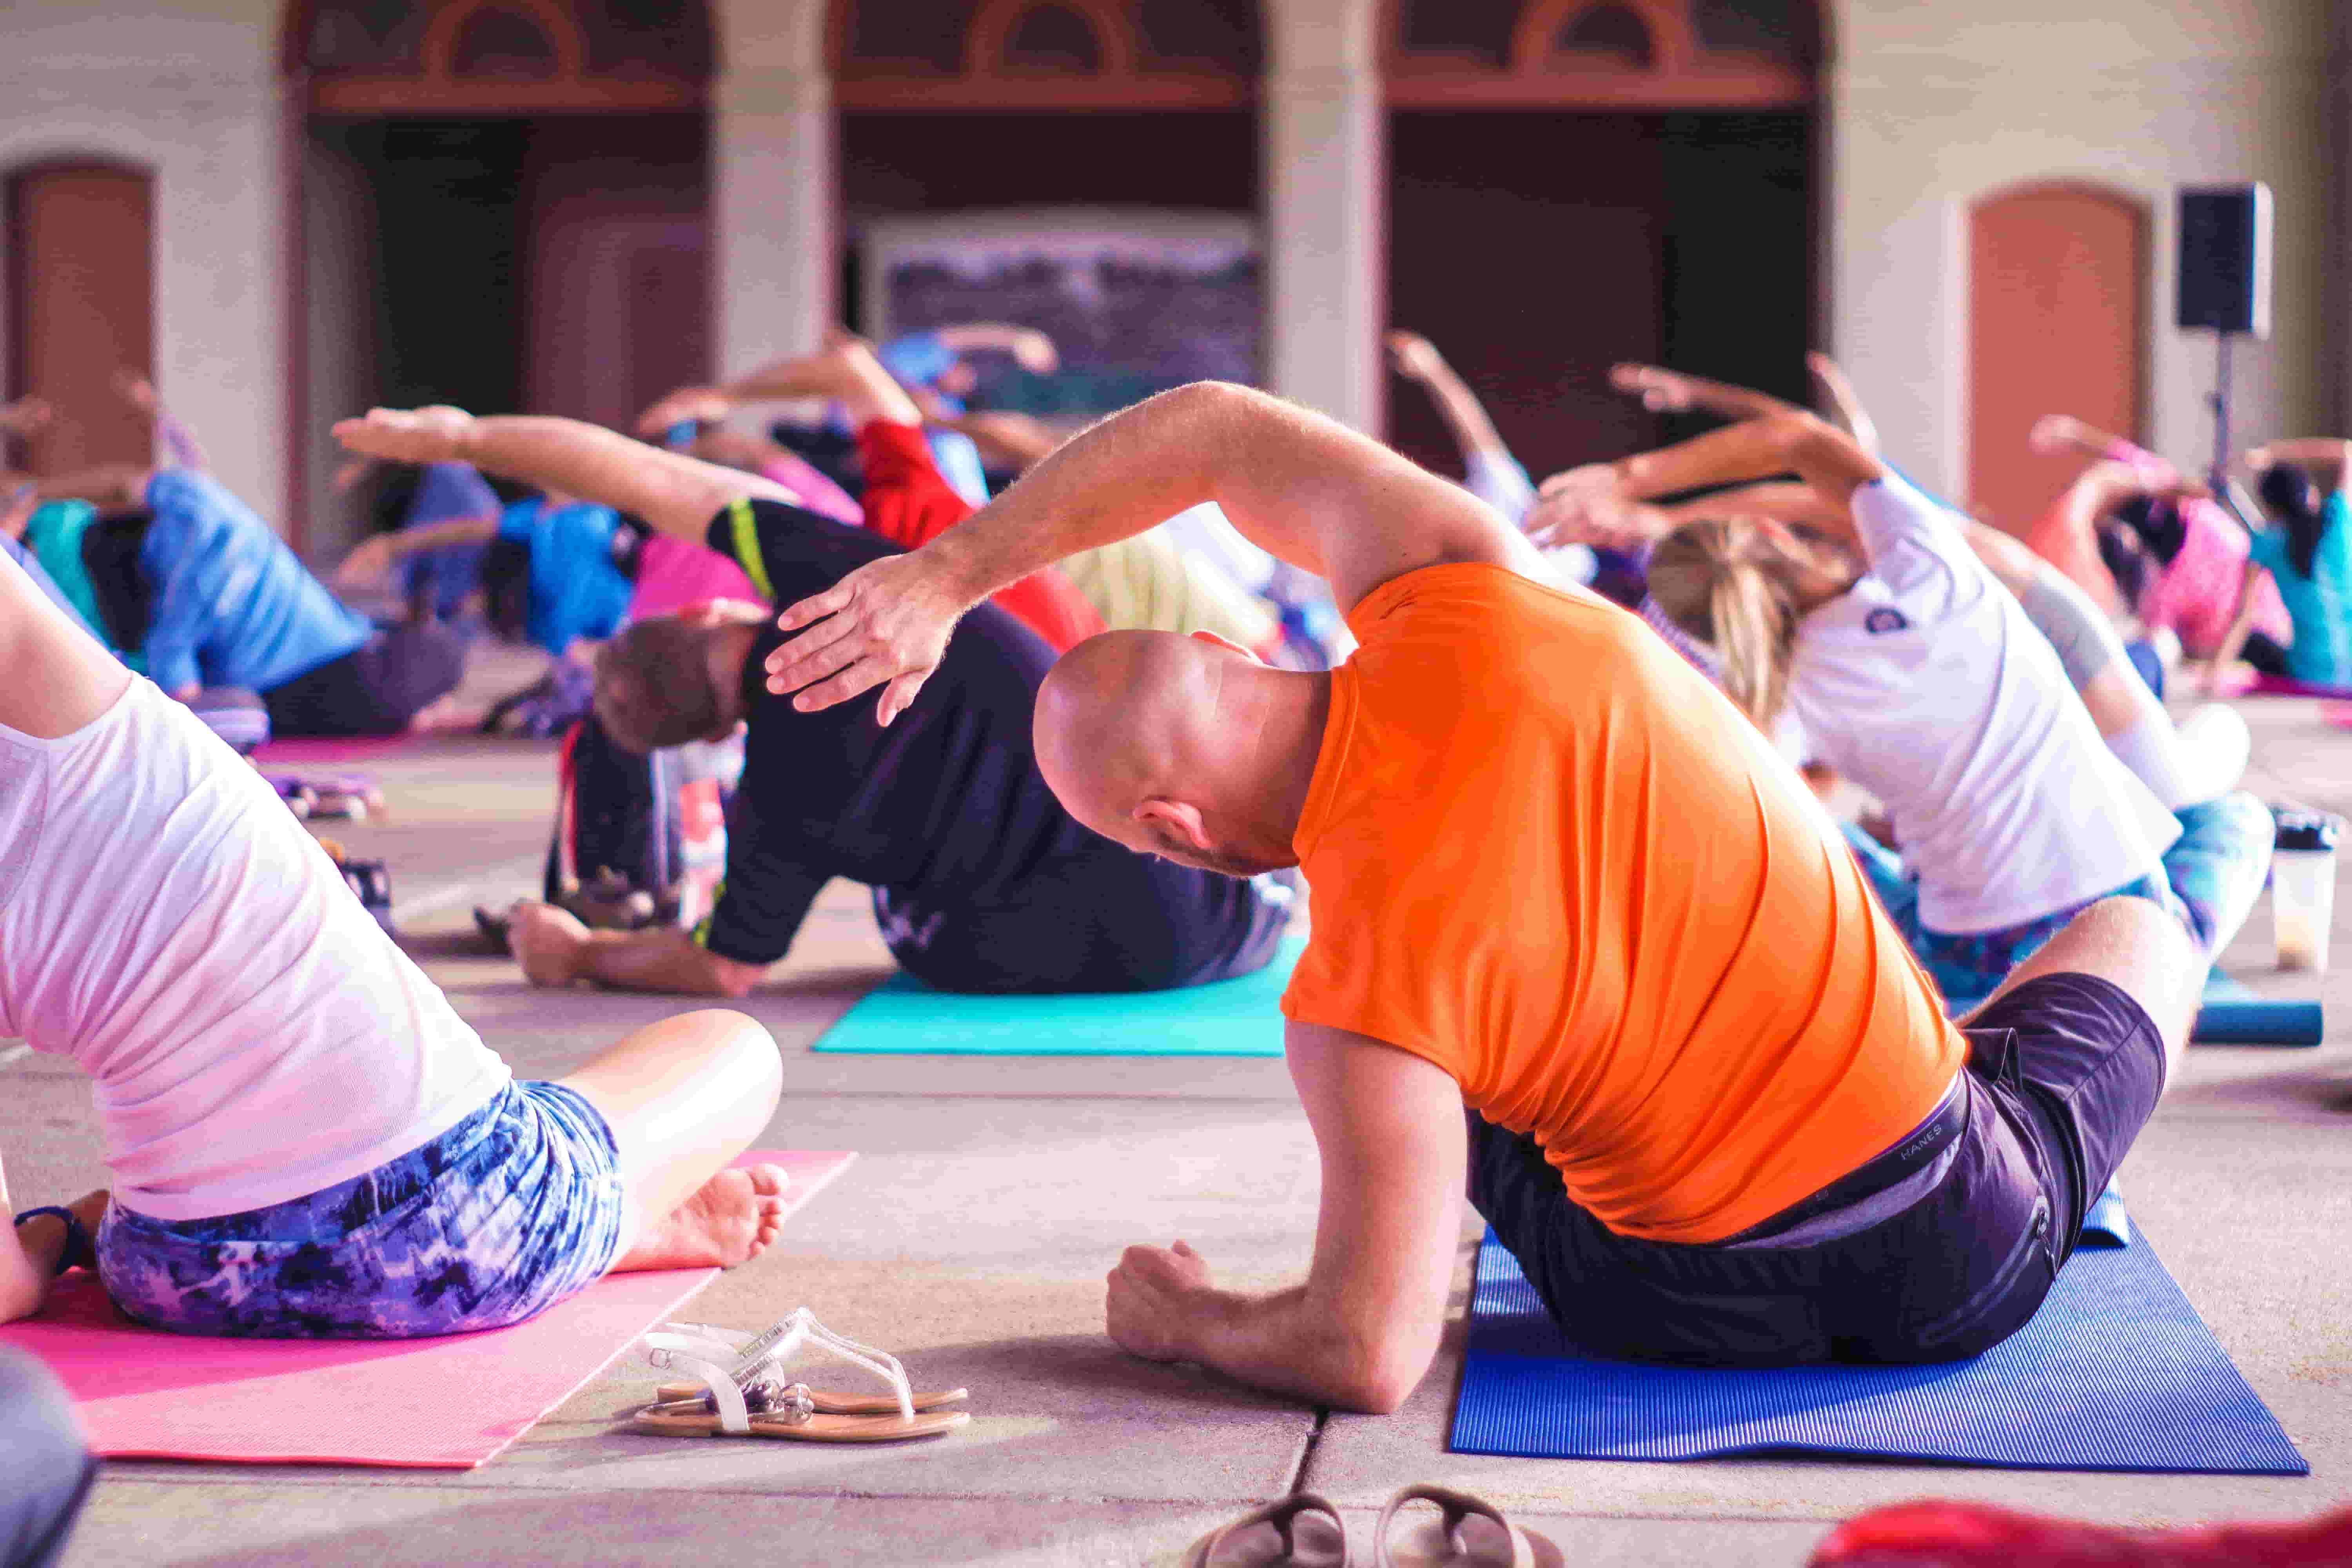 A middle-aged man takes part in a yoga class.